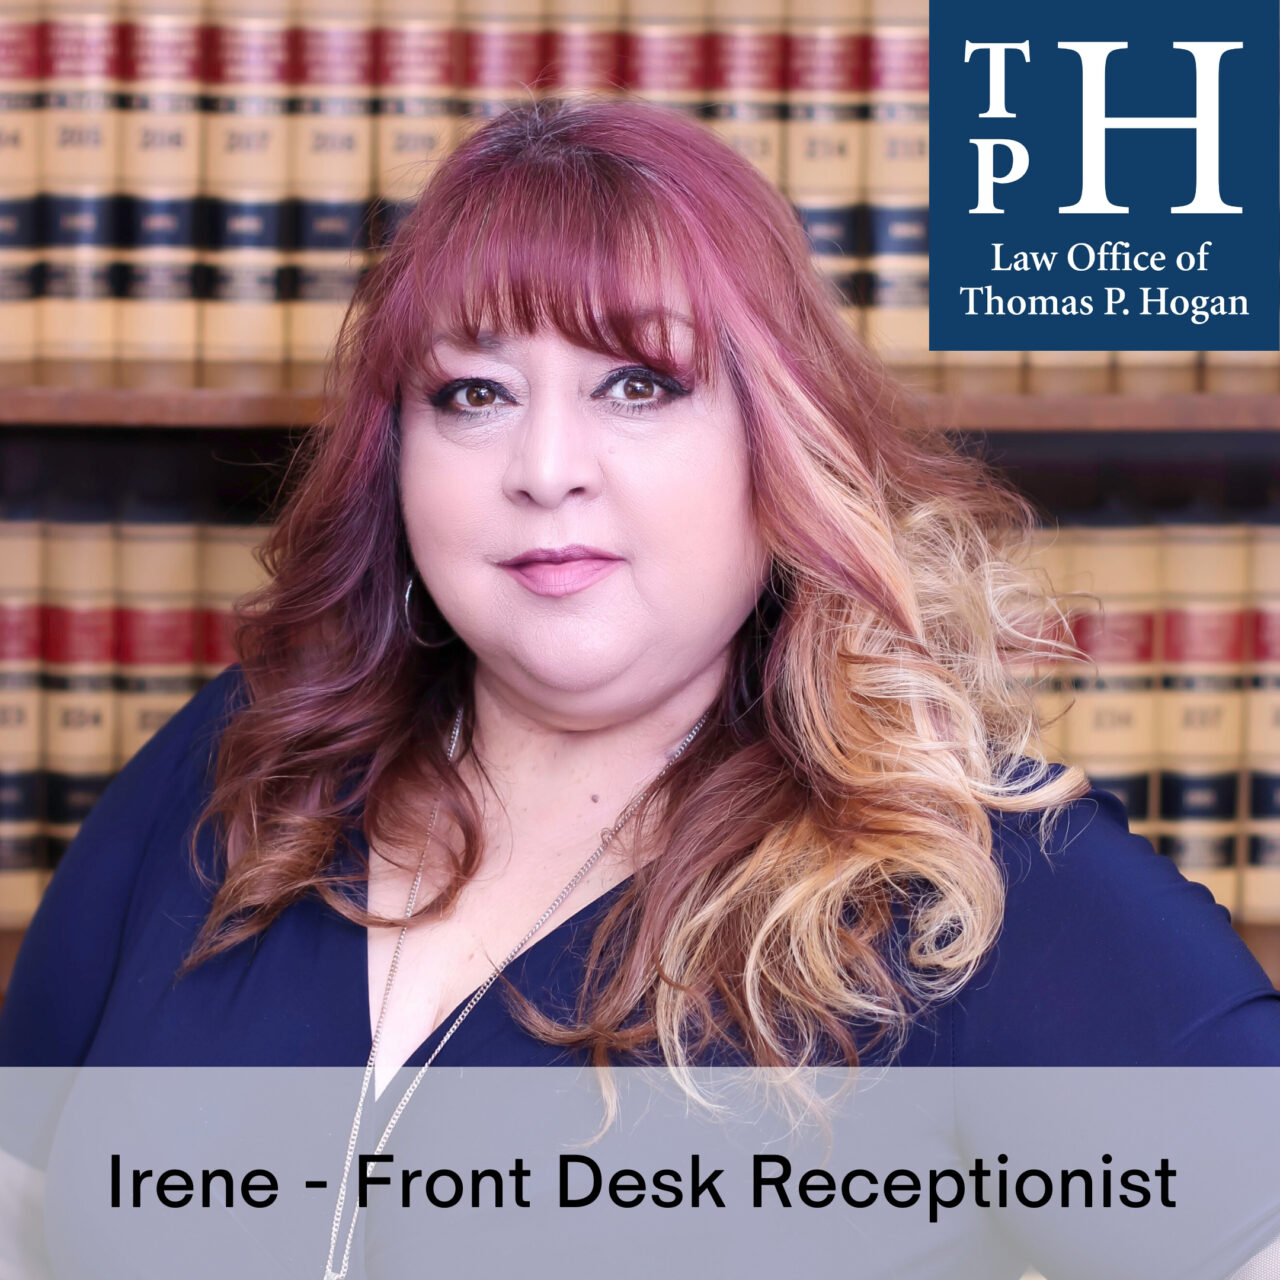 Irene Front Desk Law Office of Thomas P. Hogan